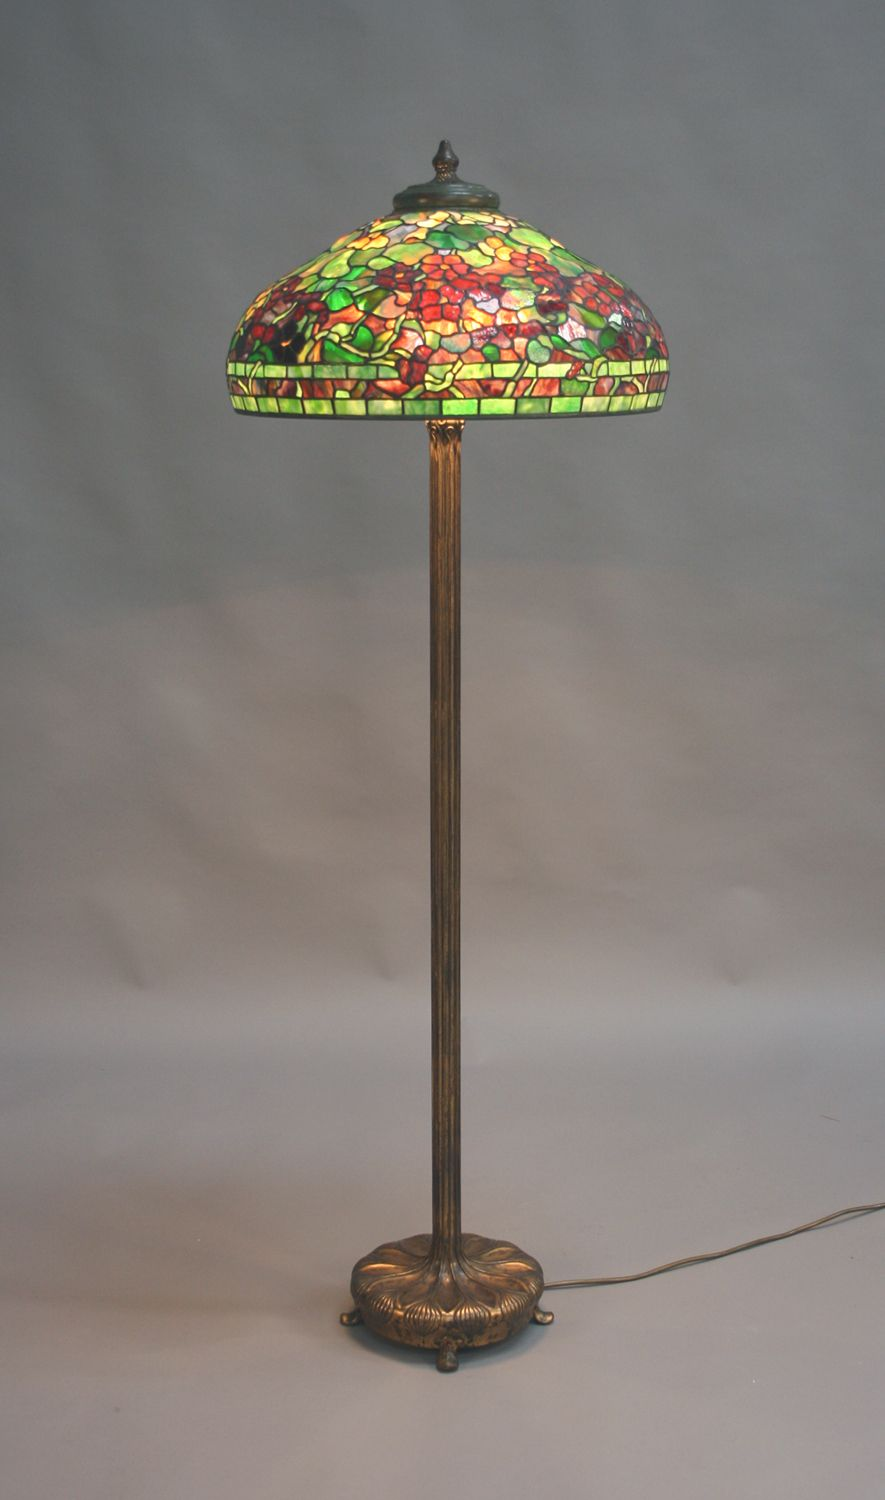 A tiffany studios nasturtium pattern green and brown patinated a tiffany studios nasturtium pattern green and brown patinated domed leaded glass shade and matched gilt bronze floor lamp circa 1910 the column base with mozeypictures Images